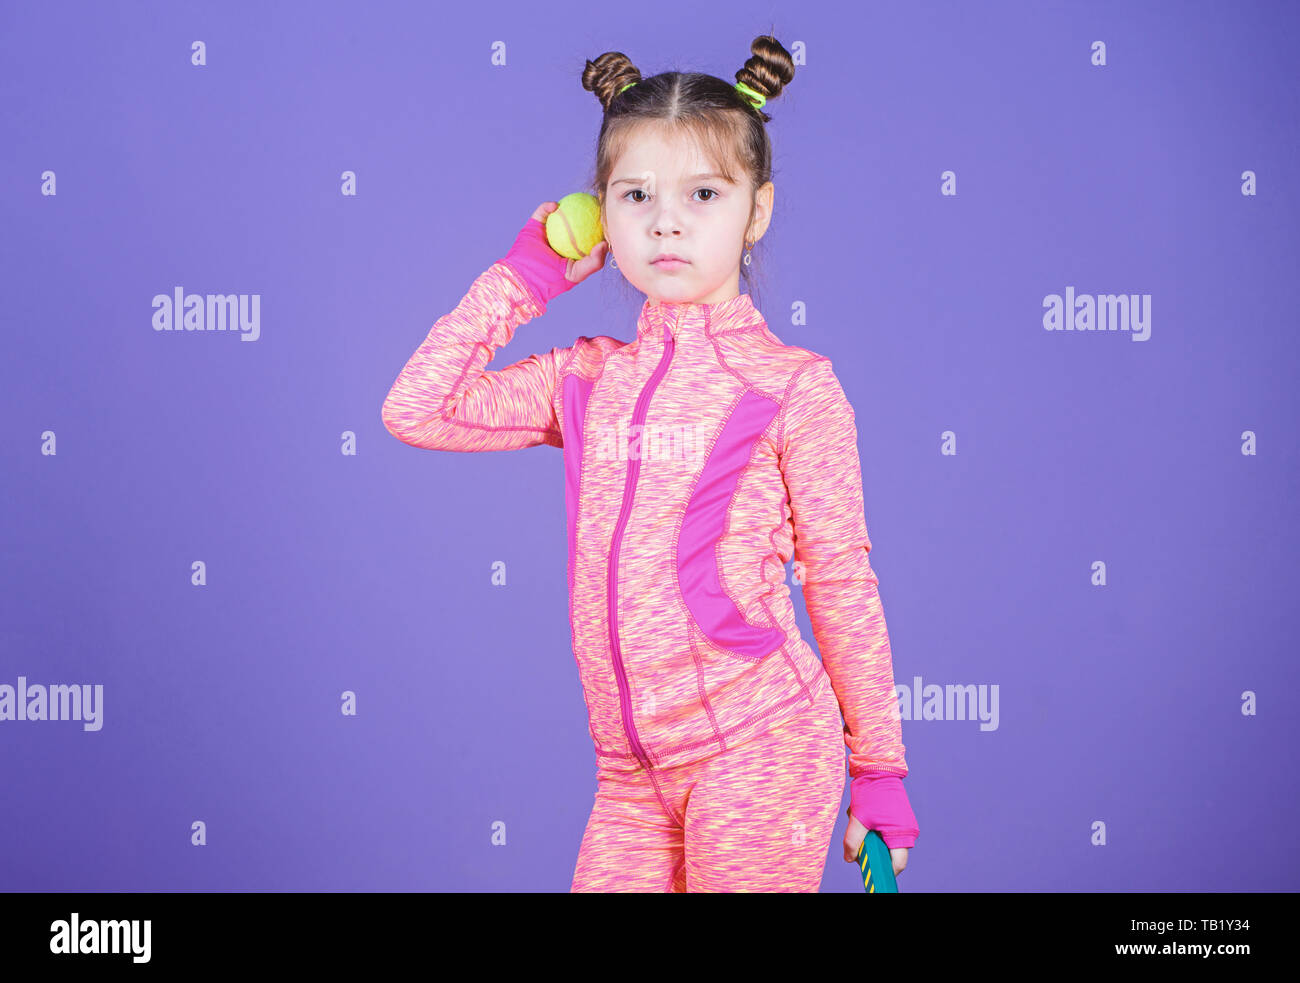 Girl Cute Child Double Bun Hairstyle Tennis Player Active Games Sport Upbringing Small Cutie Likes Tennis Sport Equipment Store Play Tennis For Fun Little Baby Sporty Costume Play Tennis Game Stock Photo